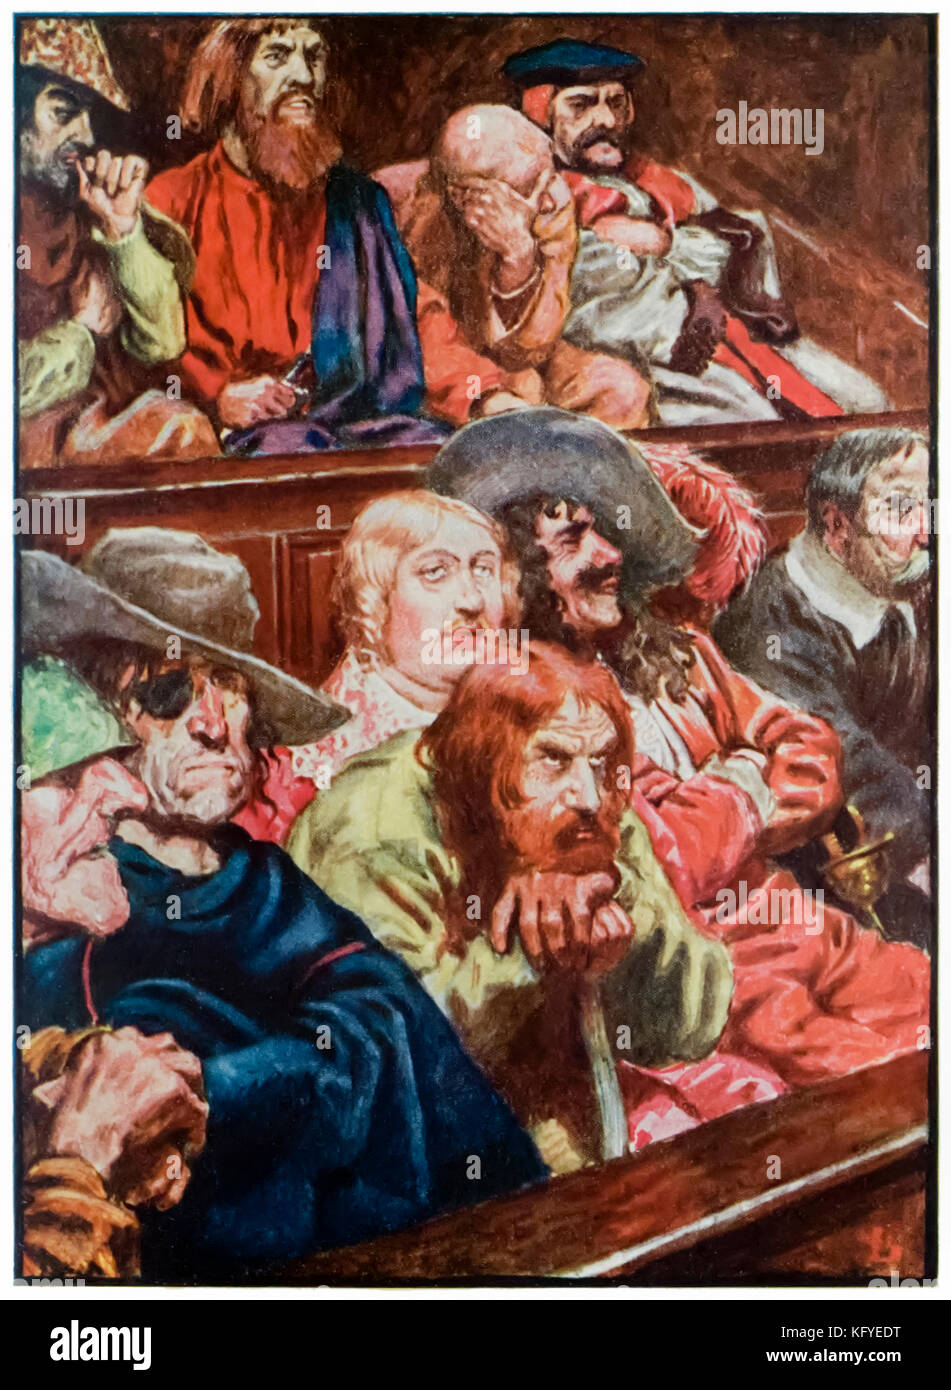 """""""The Jury"""" from 'The Pilgrim's Progress From This World, To That Which Is To Come' by John Bunyan (1628-1688). Illustration - Stock Image"""